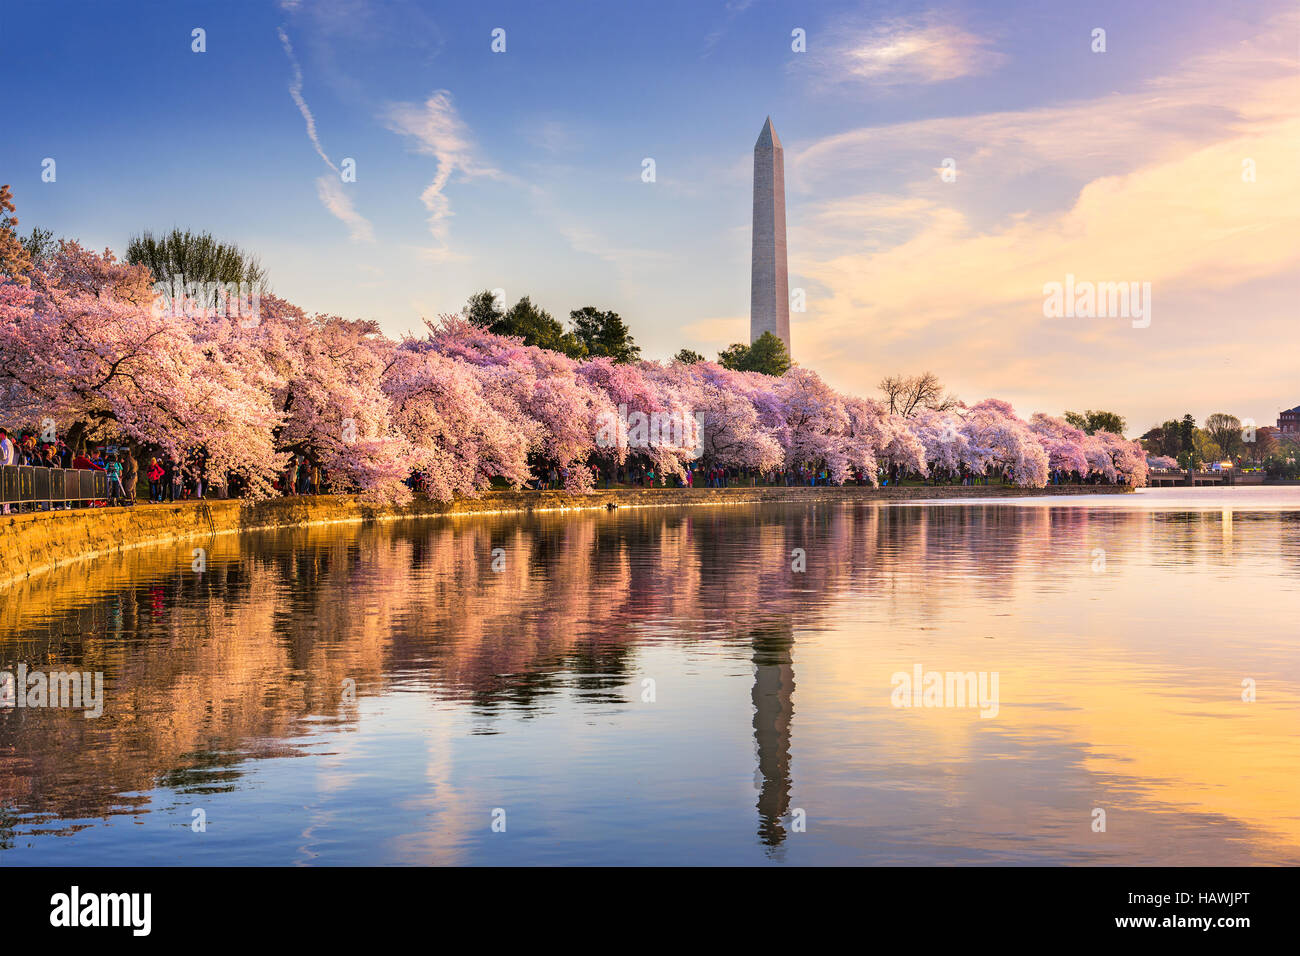 Washington DC, USA au bassin de marée avec le Washington Monument dans la saison du printemps. Photo Stock